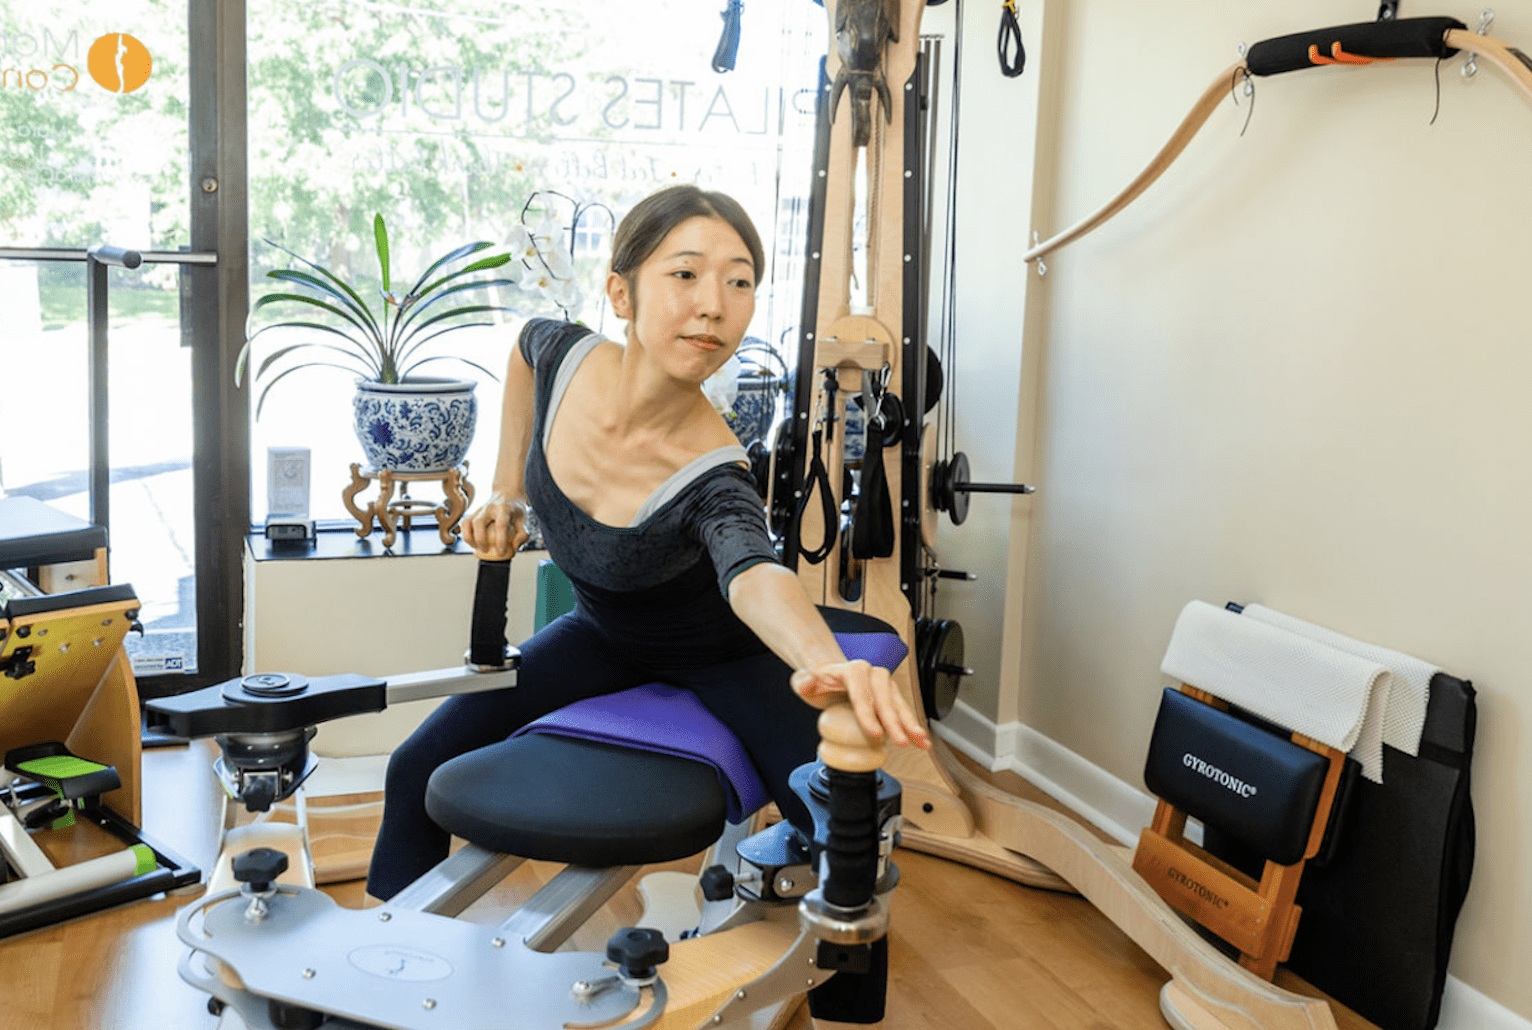 Gyrotonic Method, Pilates, Mara Core Conditioning